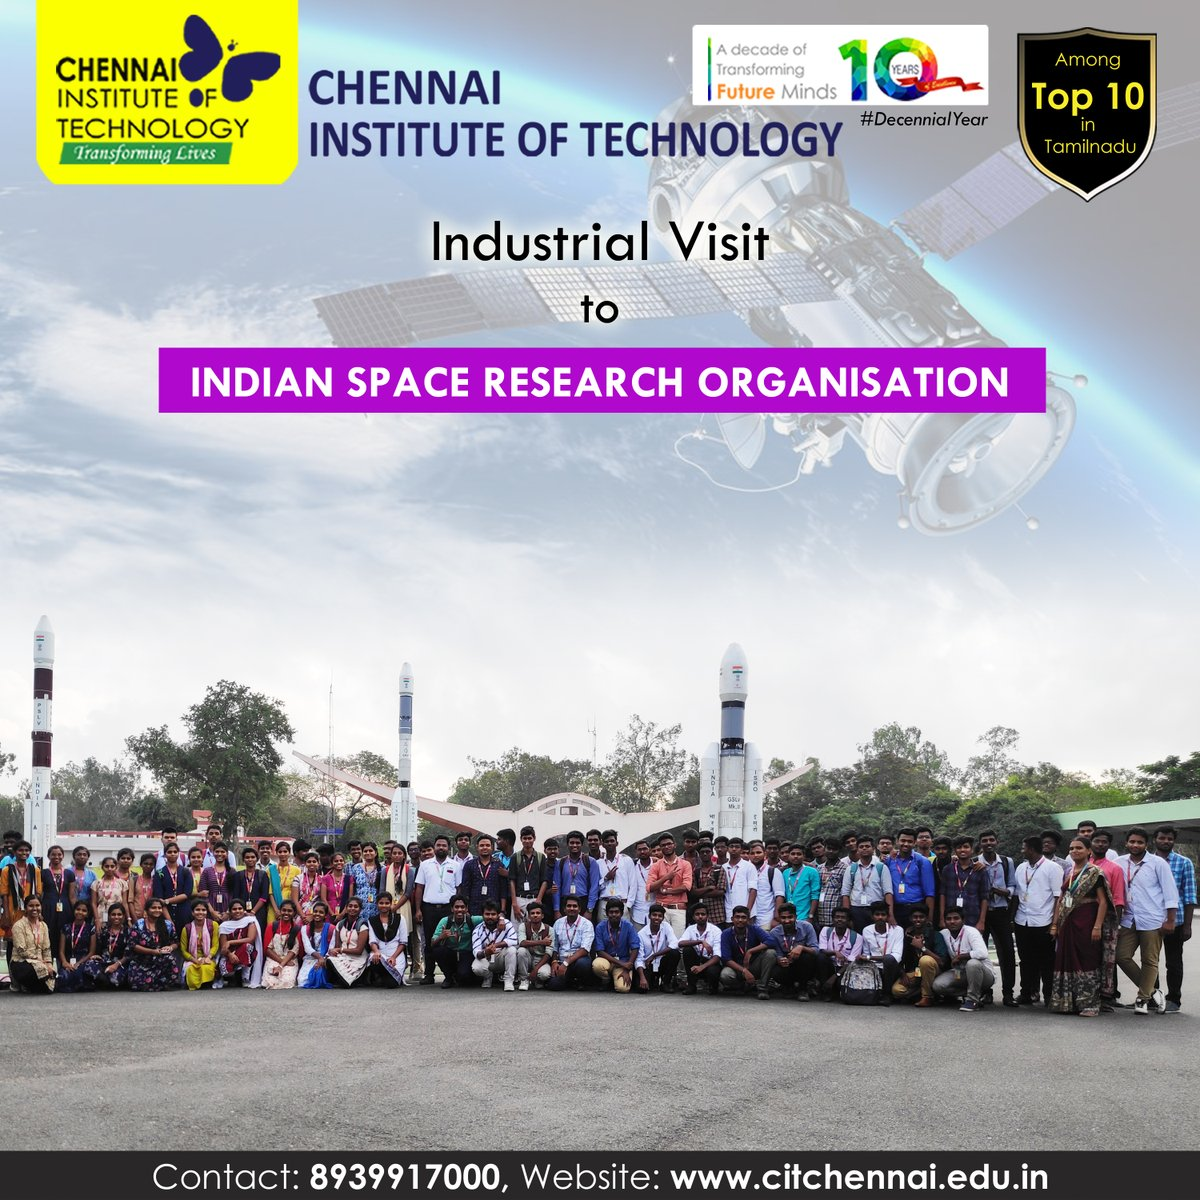 Industrial Visit to Indian Space Research Organisation organised for Second Year Students by Department of Electronics and Communication Engineering on 12th Feb, 2020  #IndustryConnectedInstitute #IndustrialVisit #ChennaiInstituteofTechnology #CITChennai #TransformingLives #ISROpic.twitter.com/5JCw5H0e9h